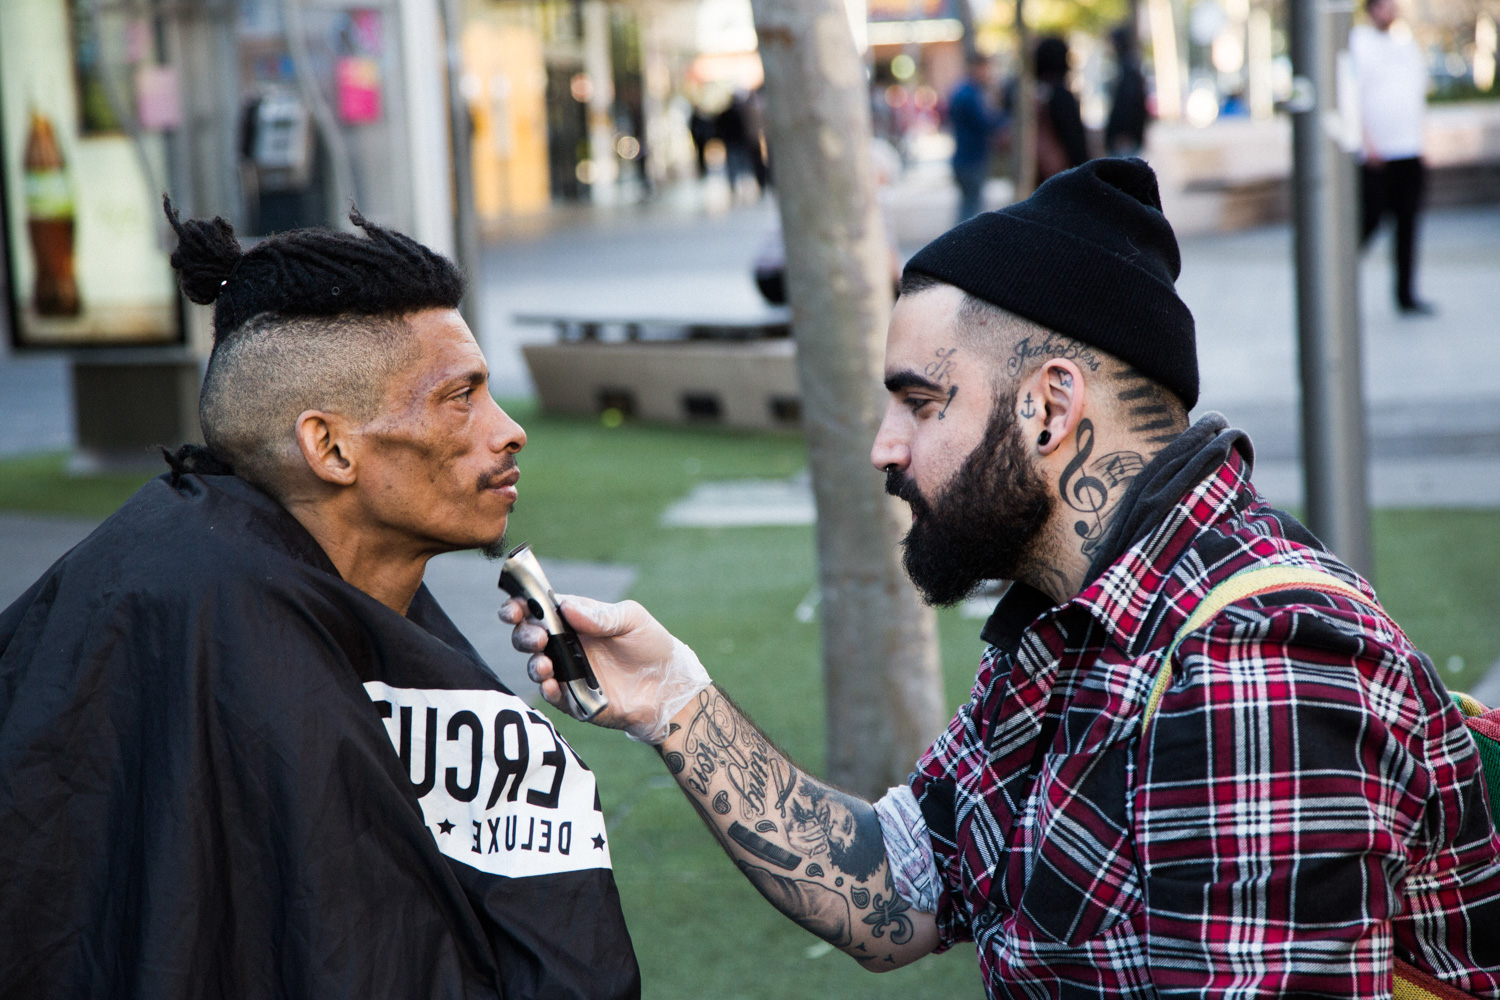 Image from TheStreetsBarber.com